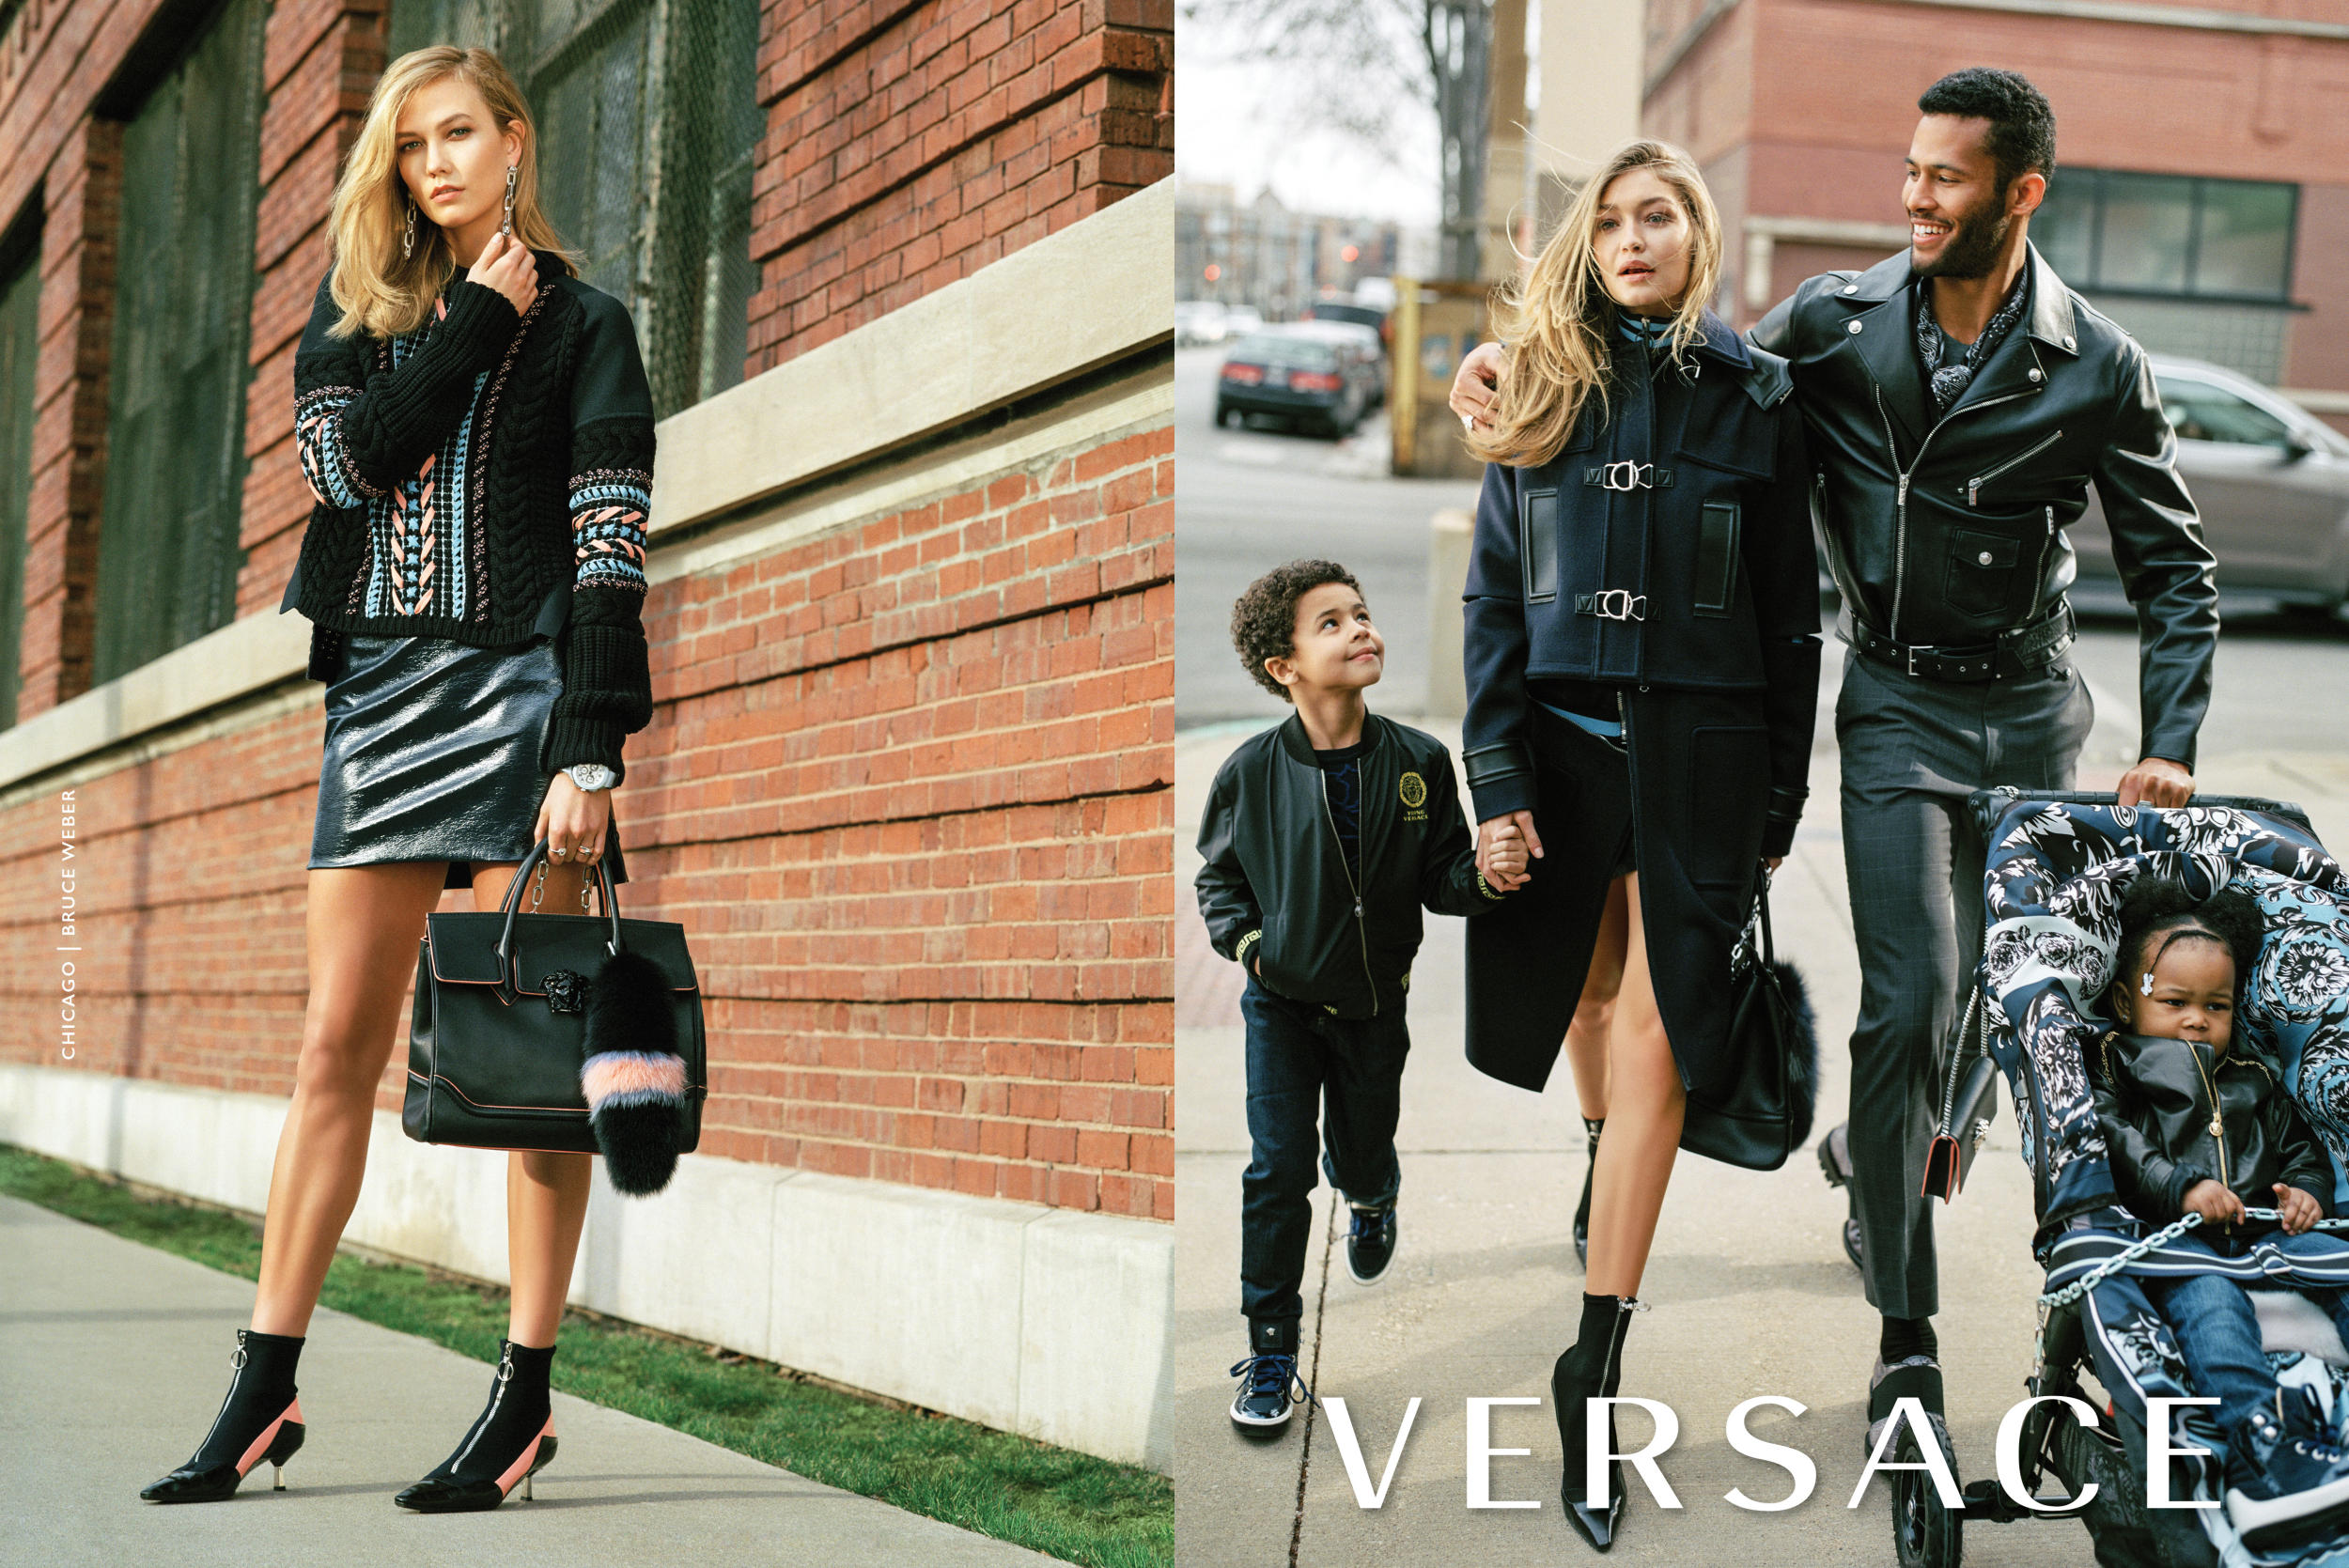 Karlie Kloss And Gigi Hadid For Versace